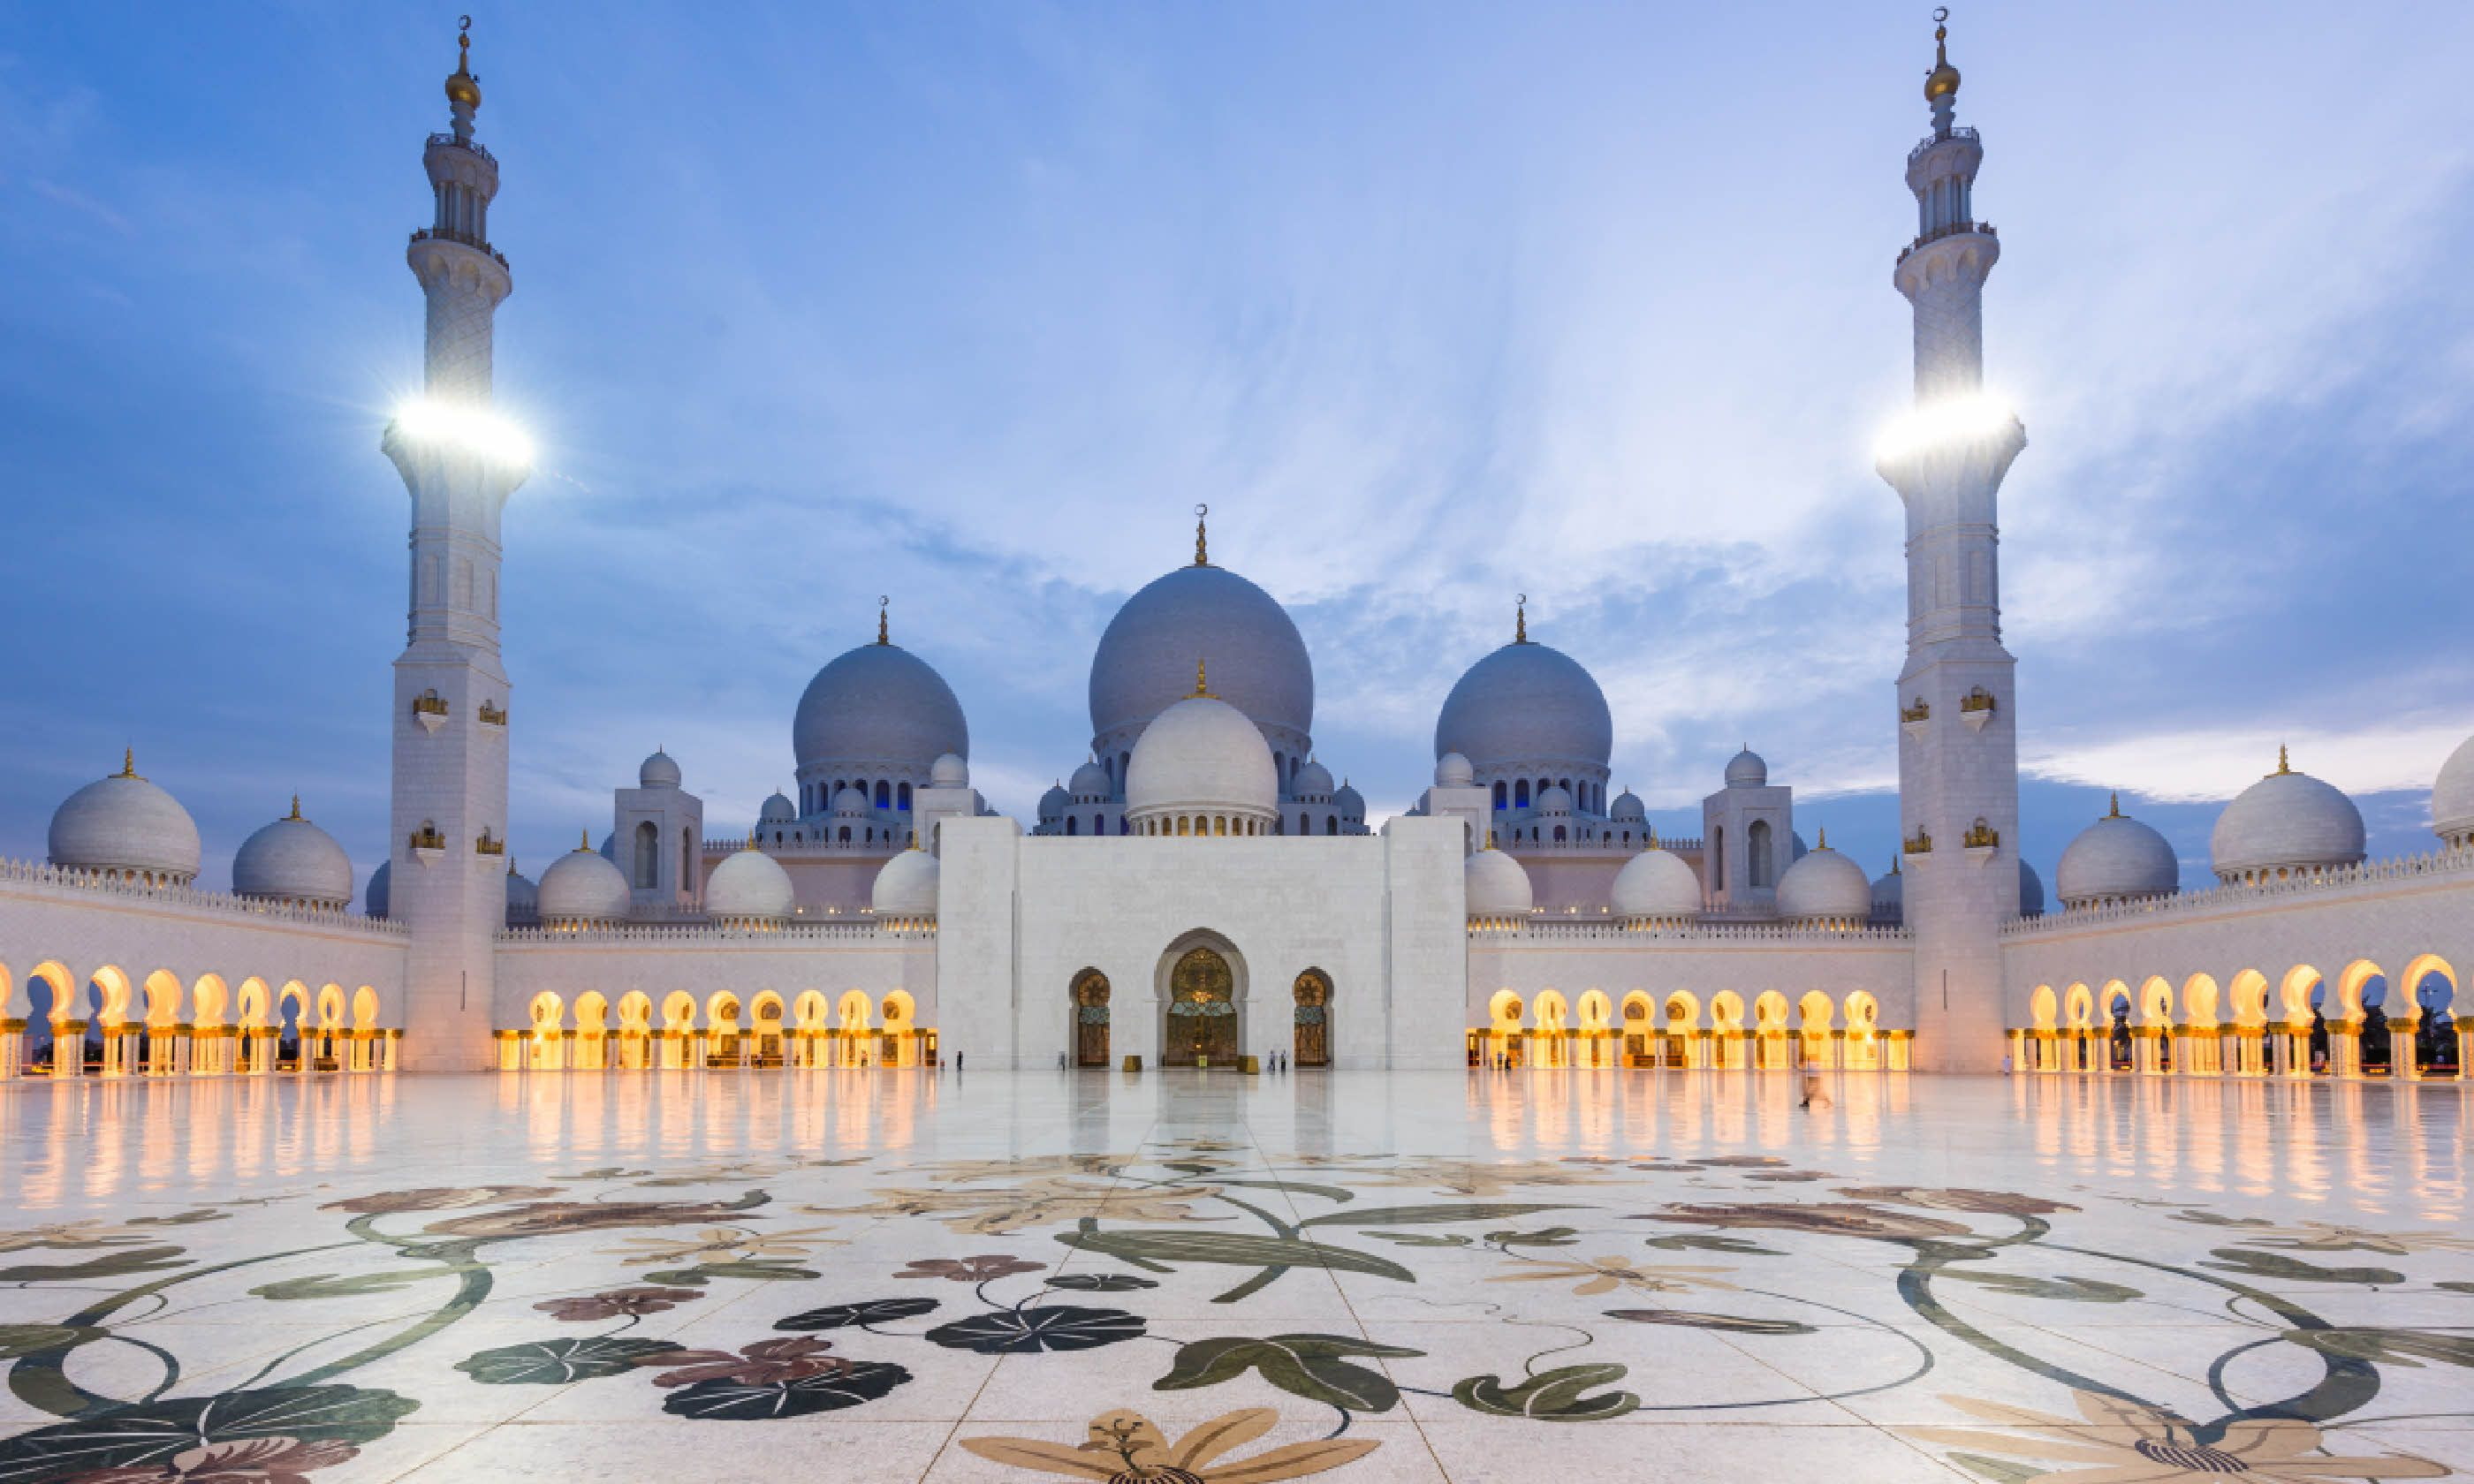 Sheikh Zayed Grand Mosque at dusk (Shutterstock)